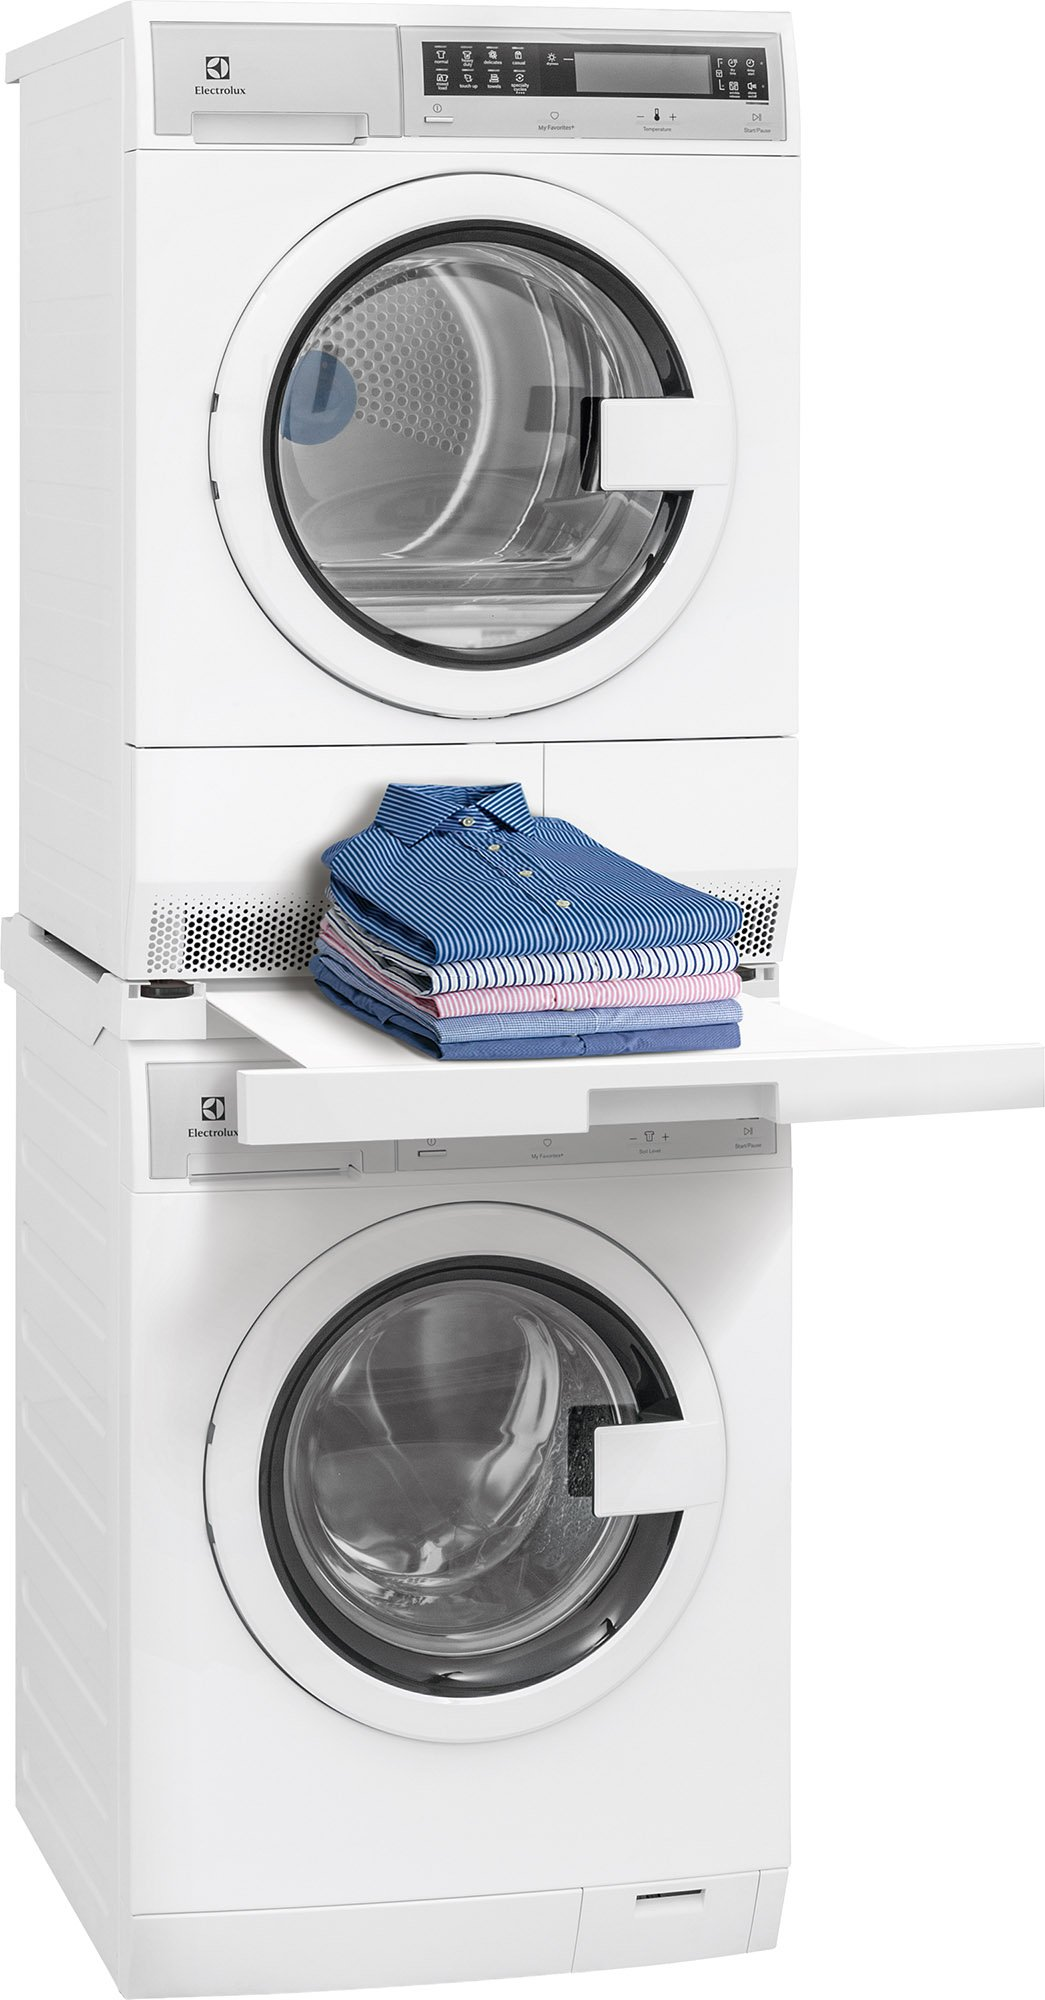 Kenmore 02618012 Laundry Install Parts Front Load Washer and Dryer Stacking Kit, White